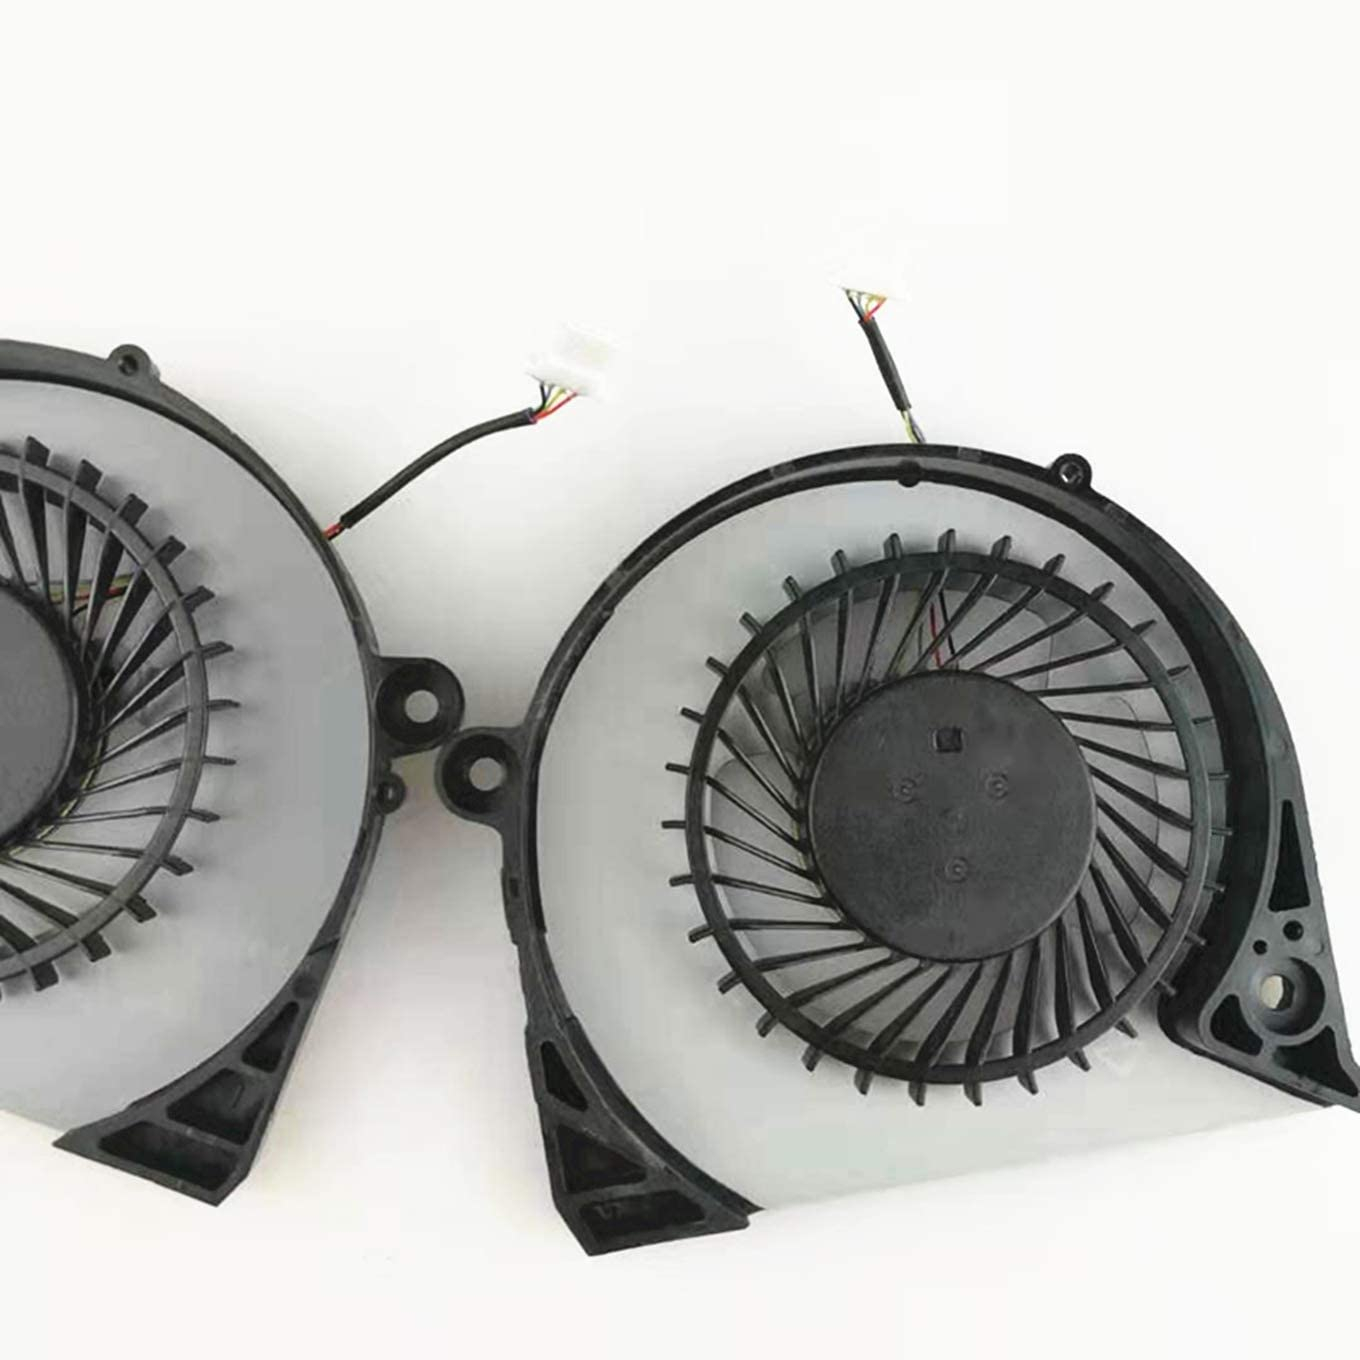 DFS2000054H0T FK0D 5.97 CFM+DFS541105FC0T FK0F 5.51 CFM Fan QUETTERLEE Replacement New CPU+GPU Cooling Fan for Dell Inspiron 15 7577 7588 G7-7588 G7-7577 Series